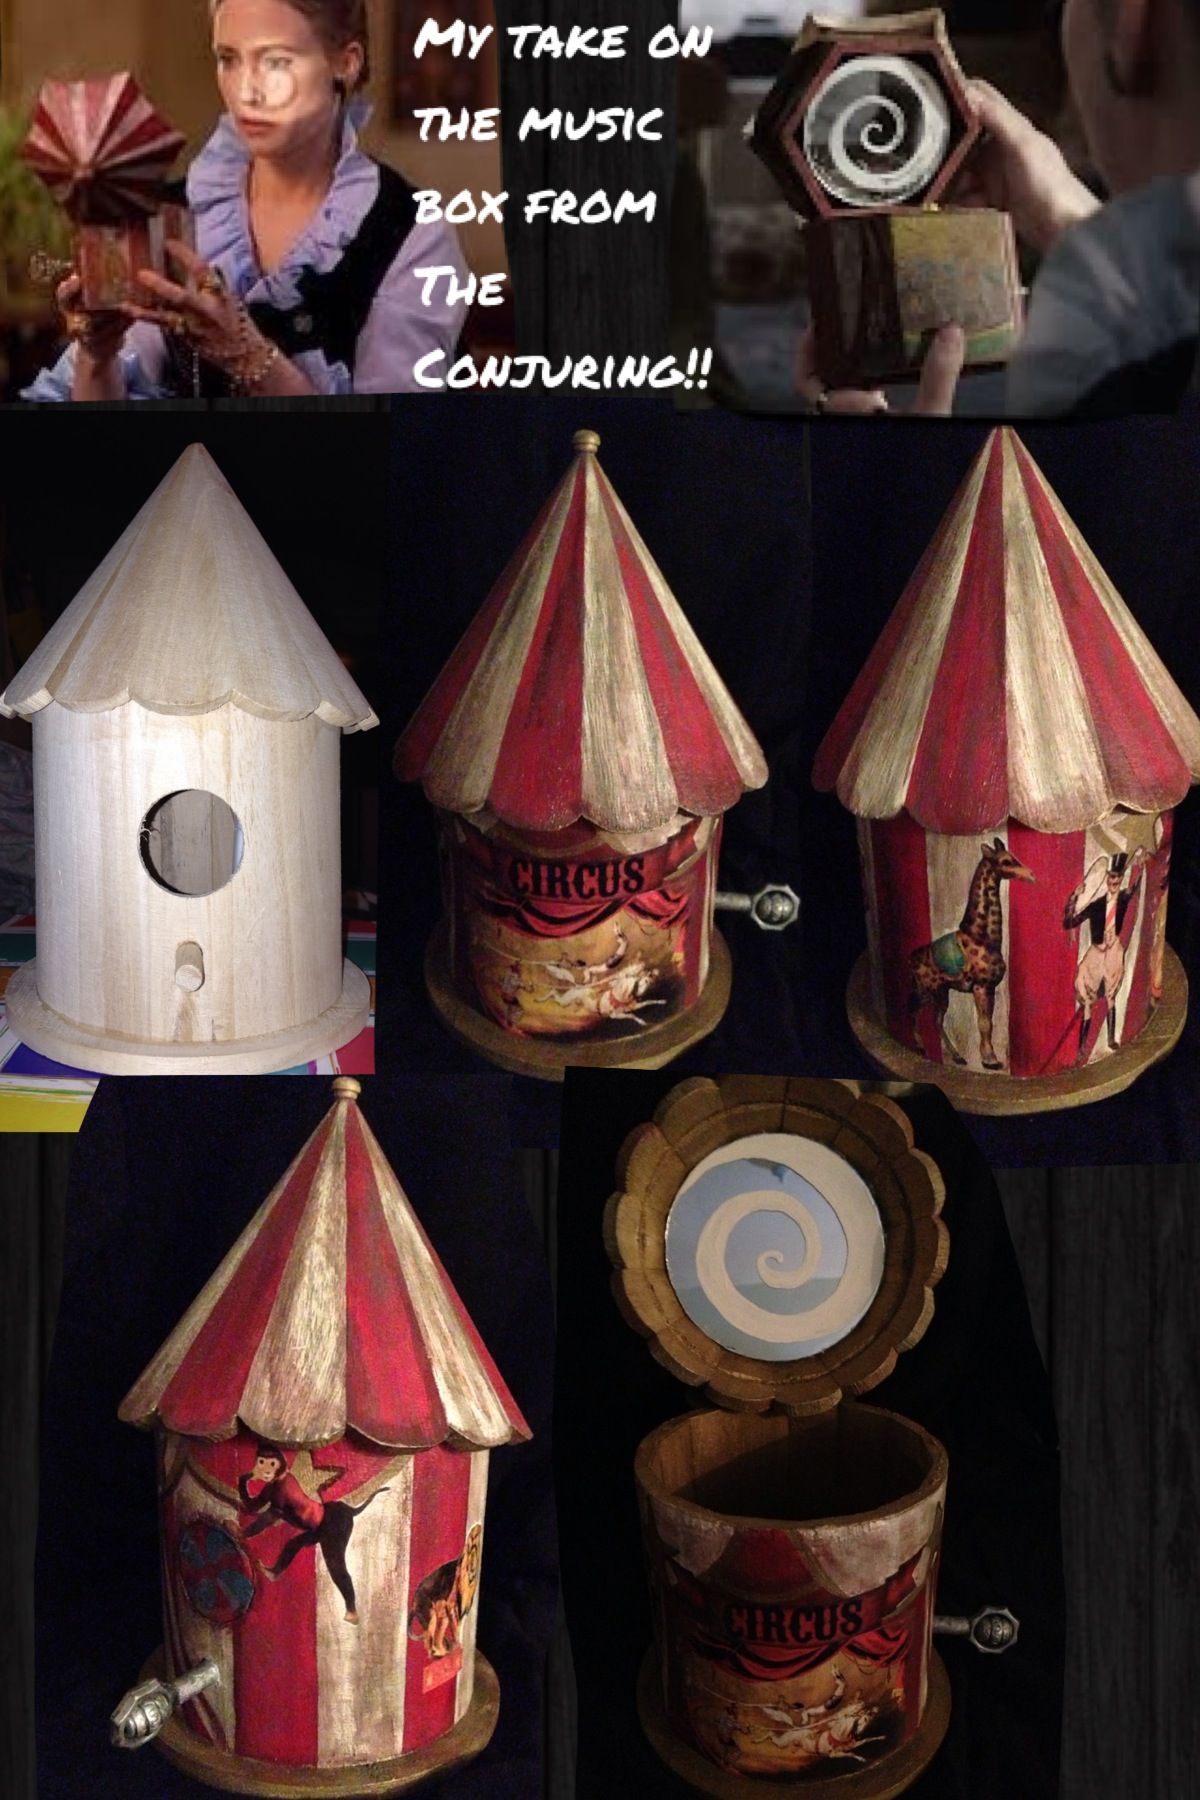 The Conjuring Music Box Right After Seeing The Movie The Conjuring A Couple Months I Wanted The Music Box In The Horror Crafts The Conjuring Birdhouse Craft